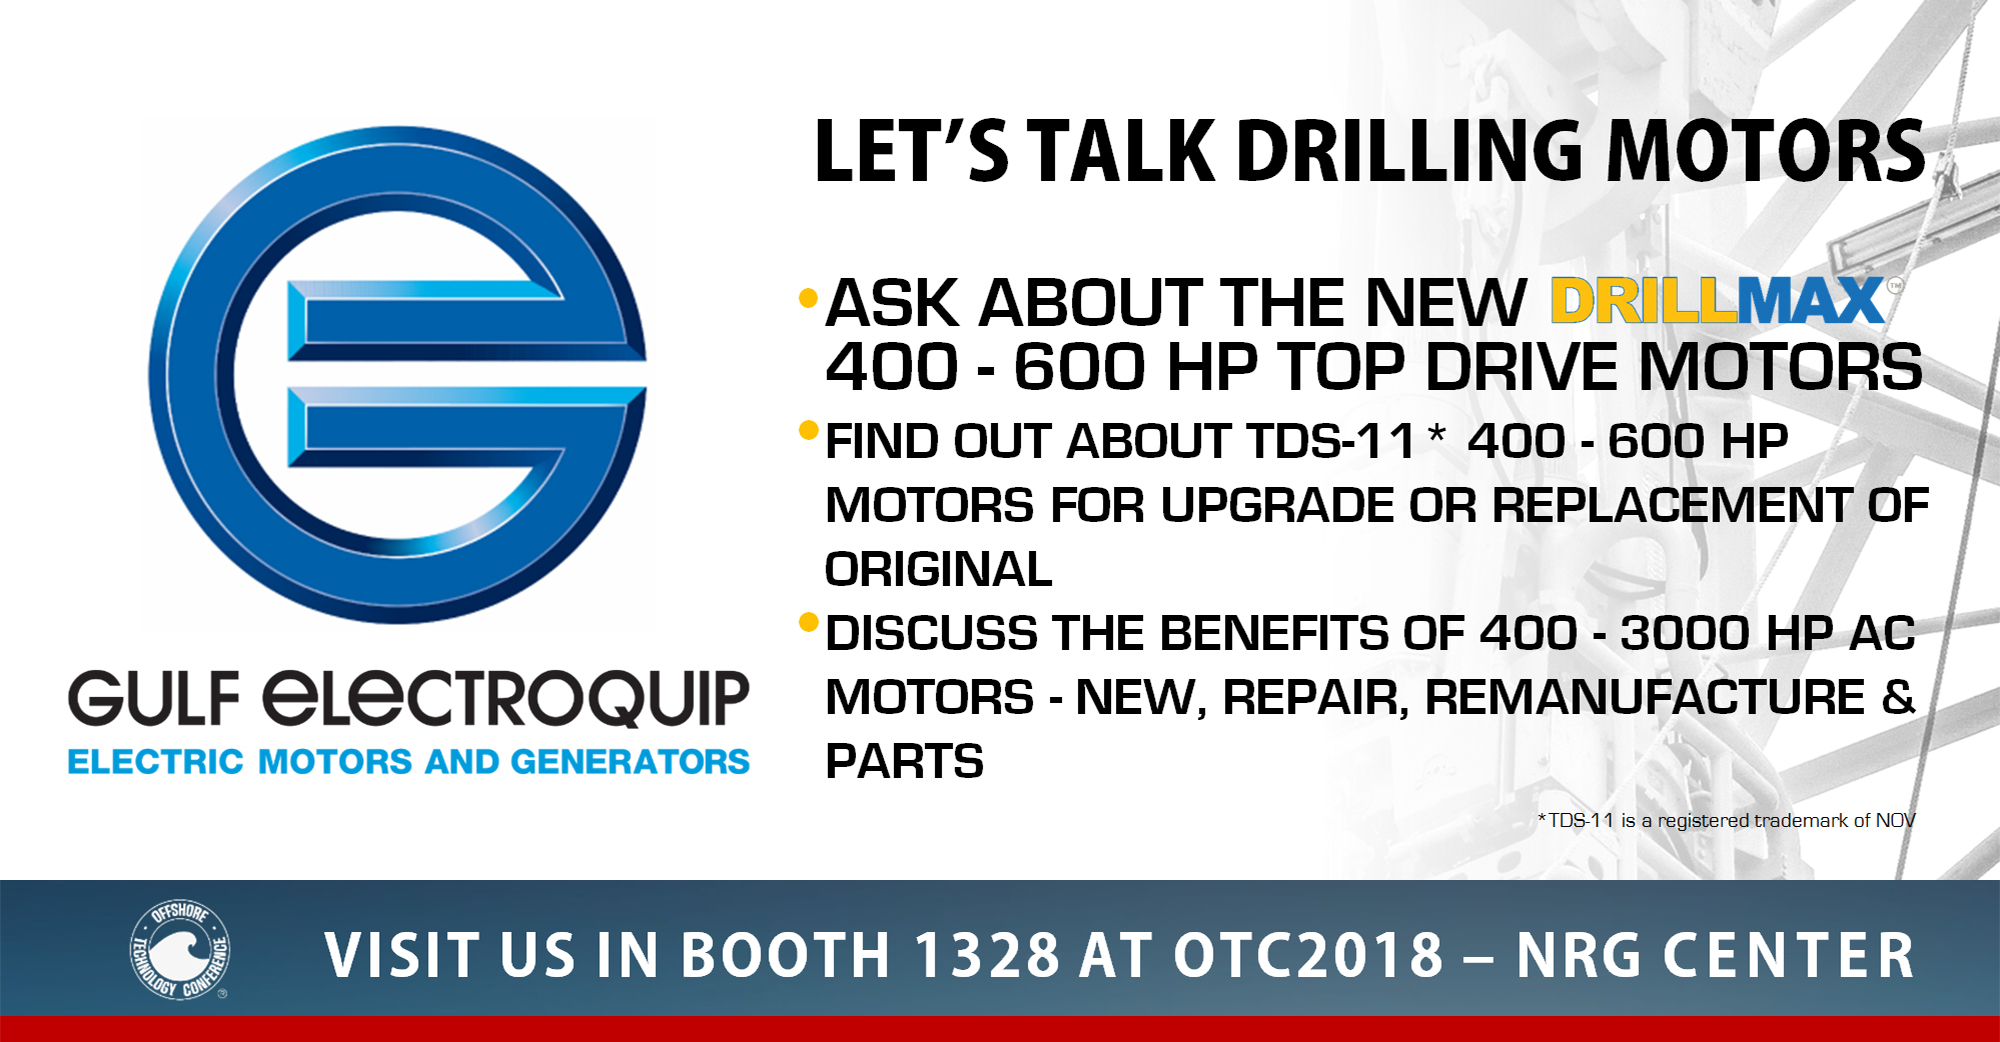 OTC 2018 Booth 1328 – April 30-May 3, 2018